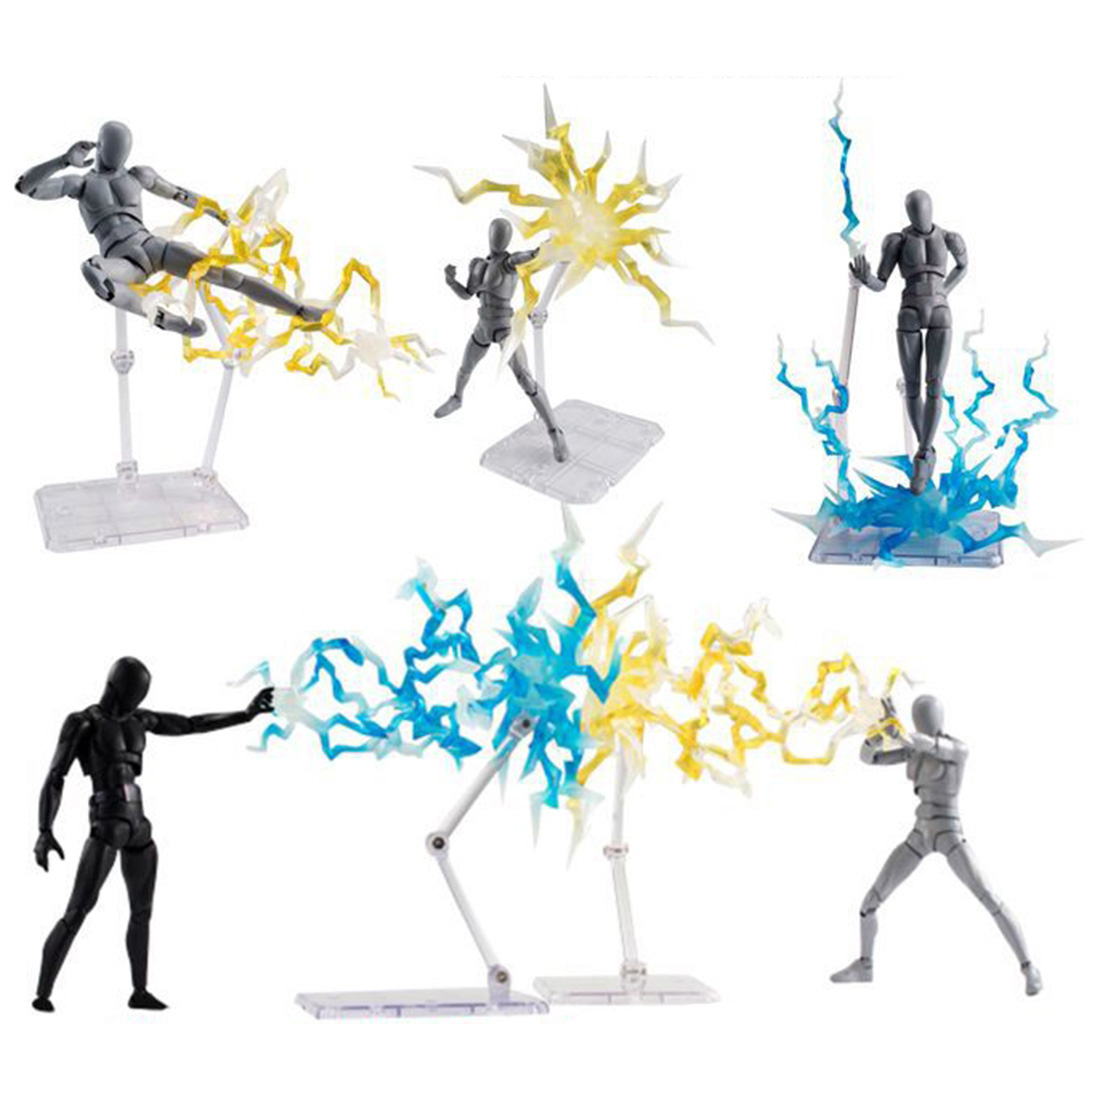 Lightning Special Effects Part For EFFECT IMPACT 1/6 Figure - Transparent